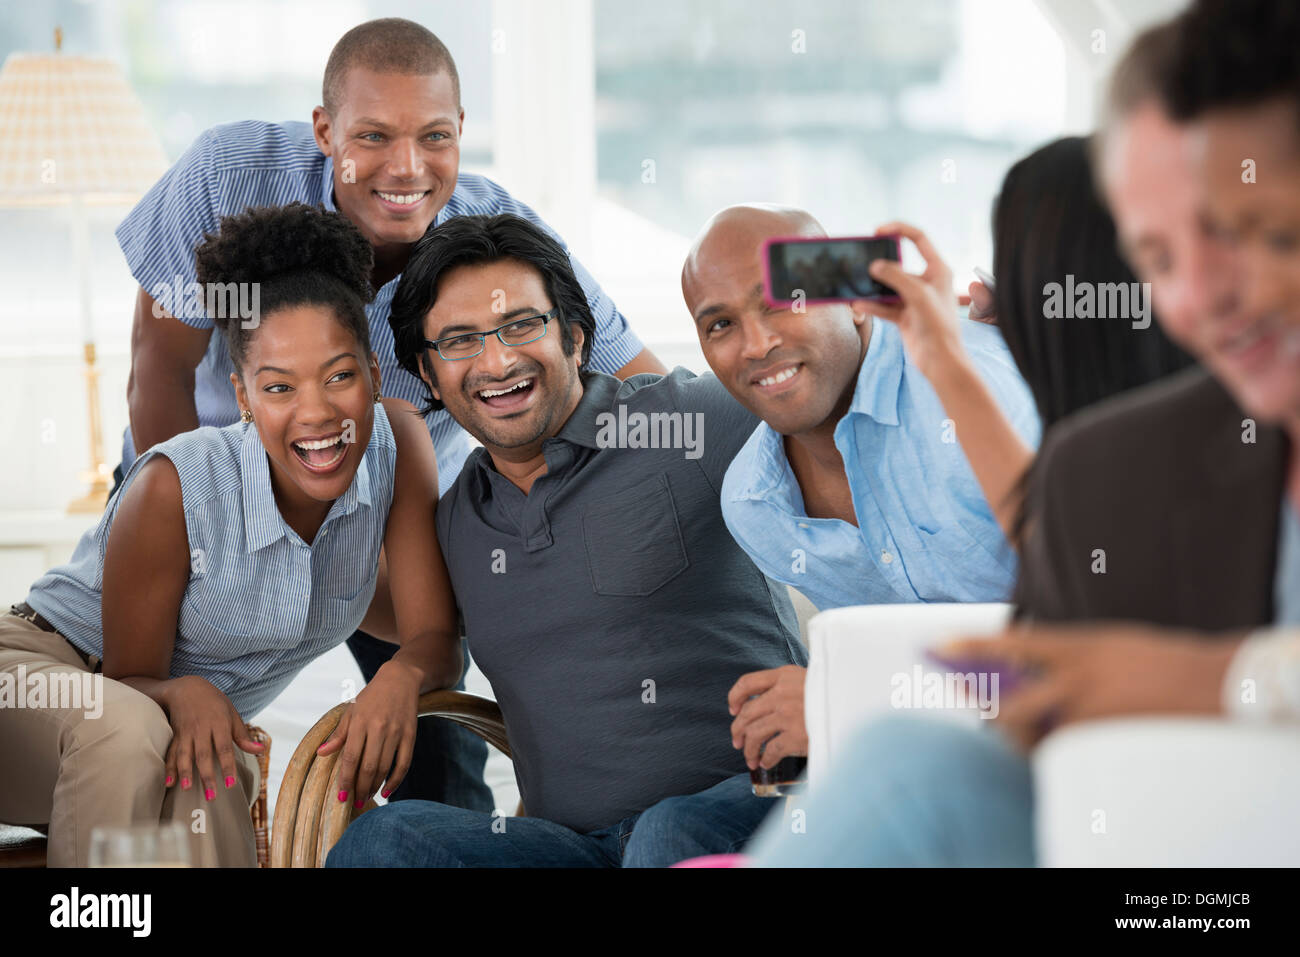 office event. A man taking a selfie of the group with a smart phone. - Stock Image